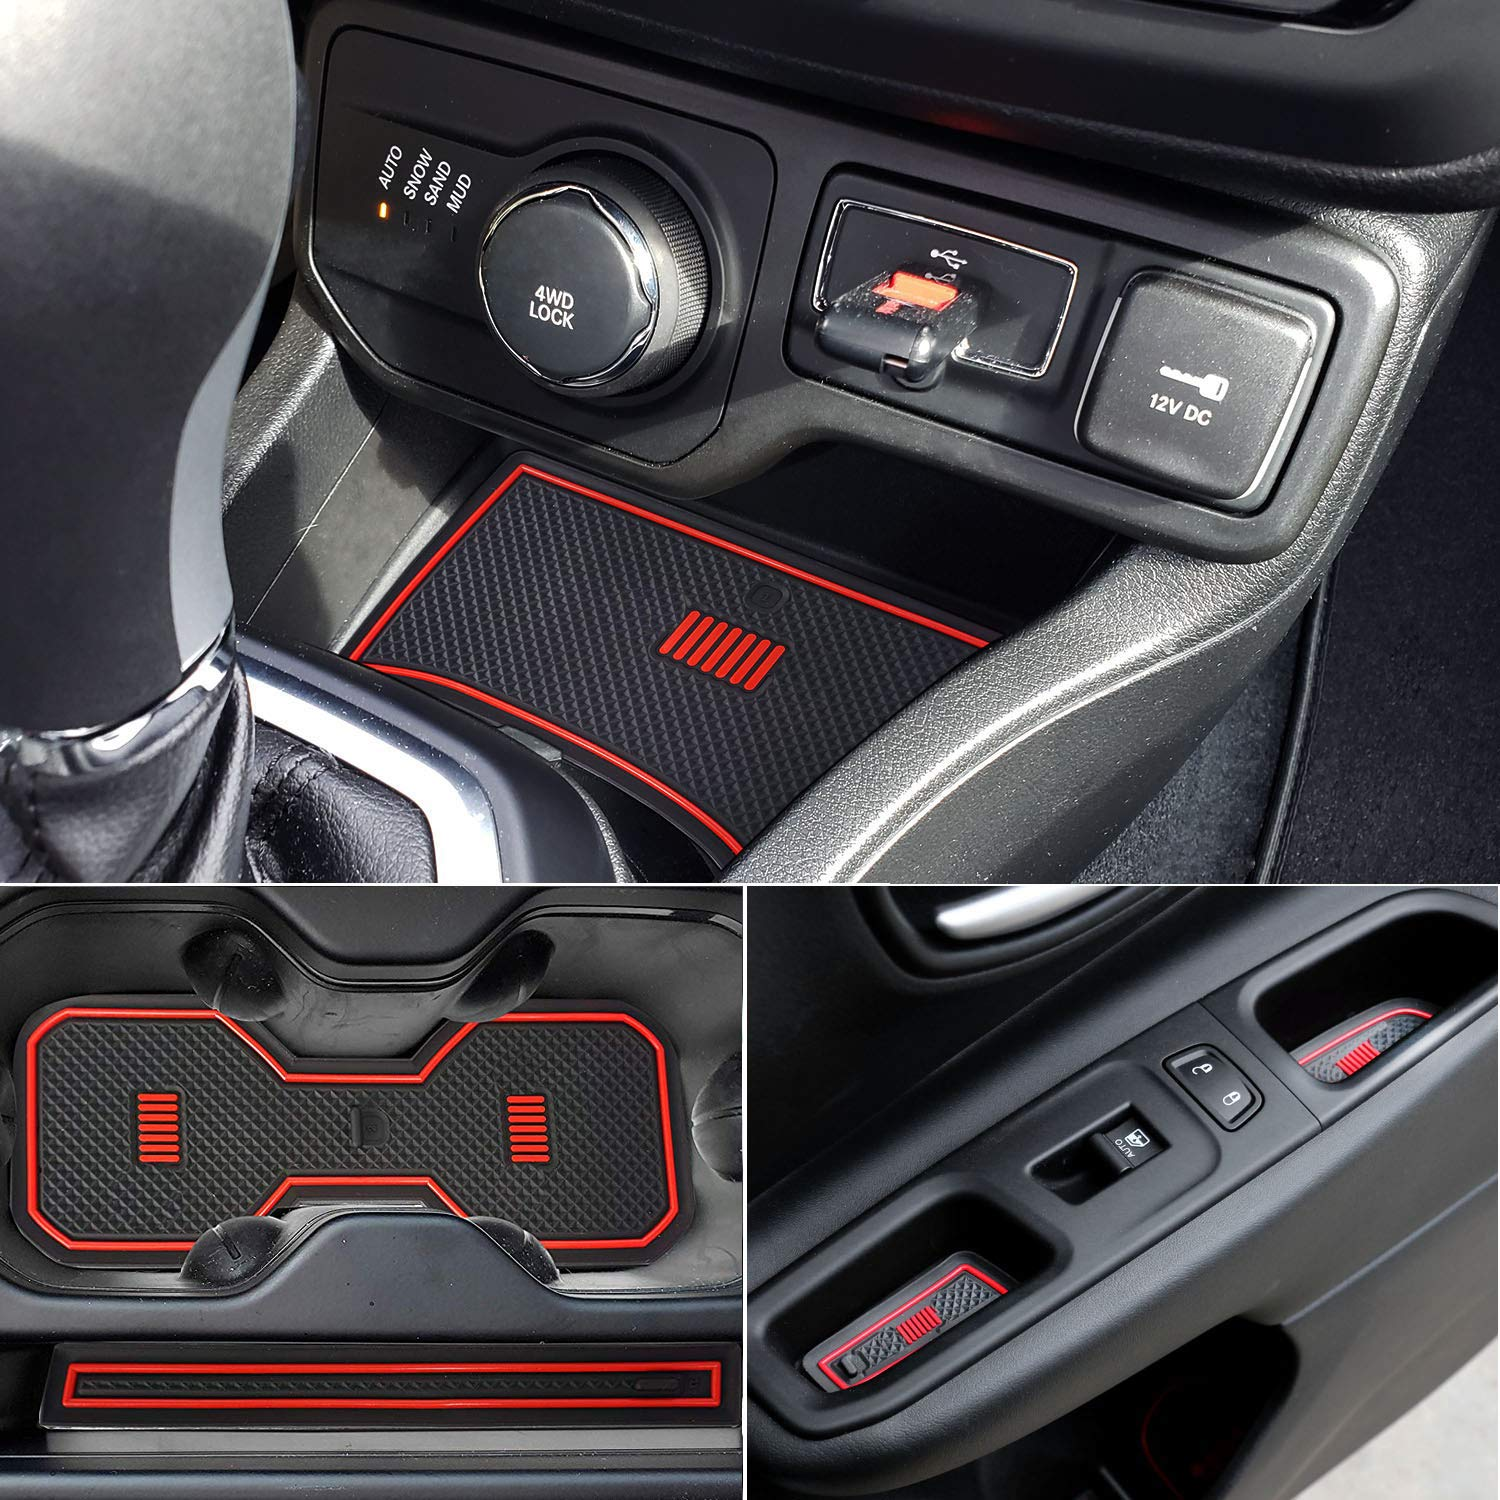 White=Fluorescence ZTYCKJ Car Styling Cushion Non-Slip Gate Slot Pad Cup Mats Auto Interior Door Slot Pad Mat For Jeep Renegade 2018 2019 Interior Parts Accessories